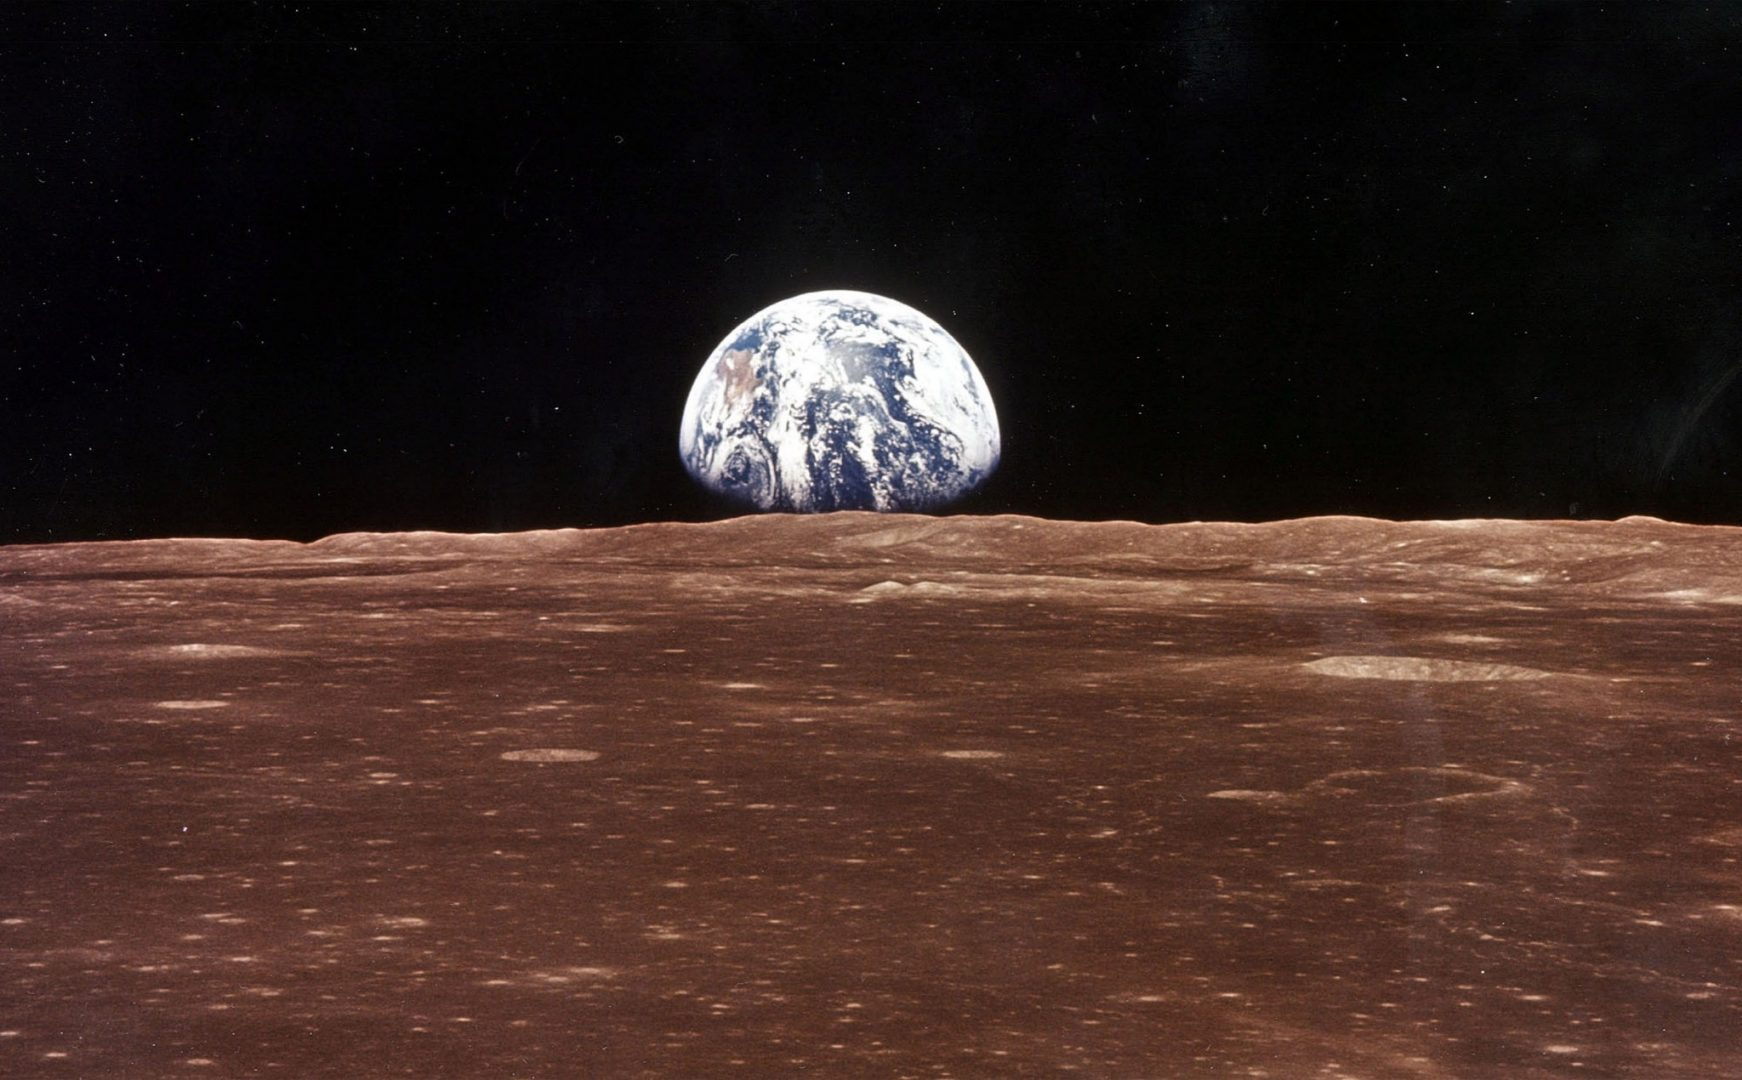 Were alien noises heard on the other side of the moon in 1969 – Loaded